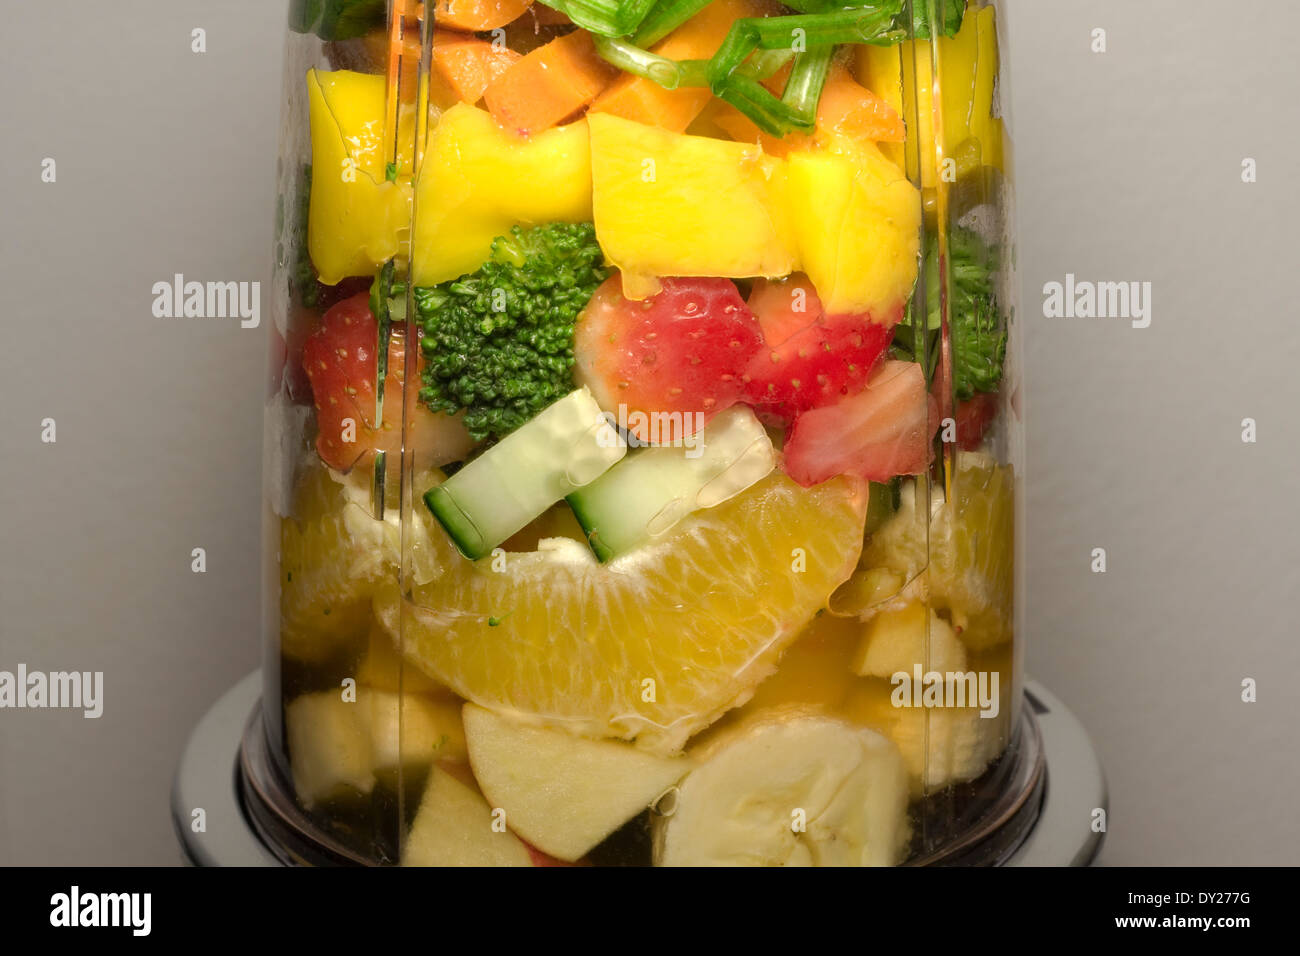 Various Fruits and Vegetables inside of a smoothie machine waiting to be pulverized (f/11) - Stock Image